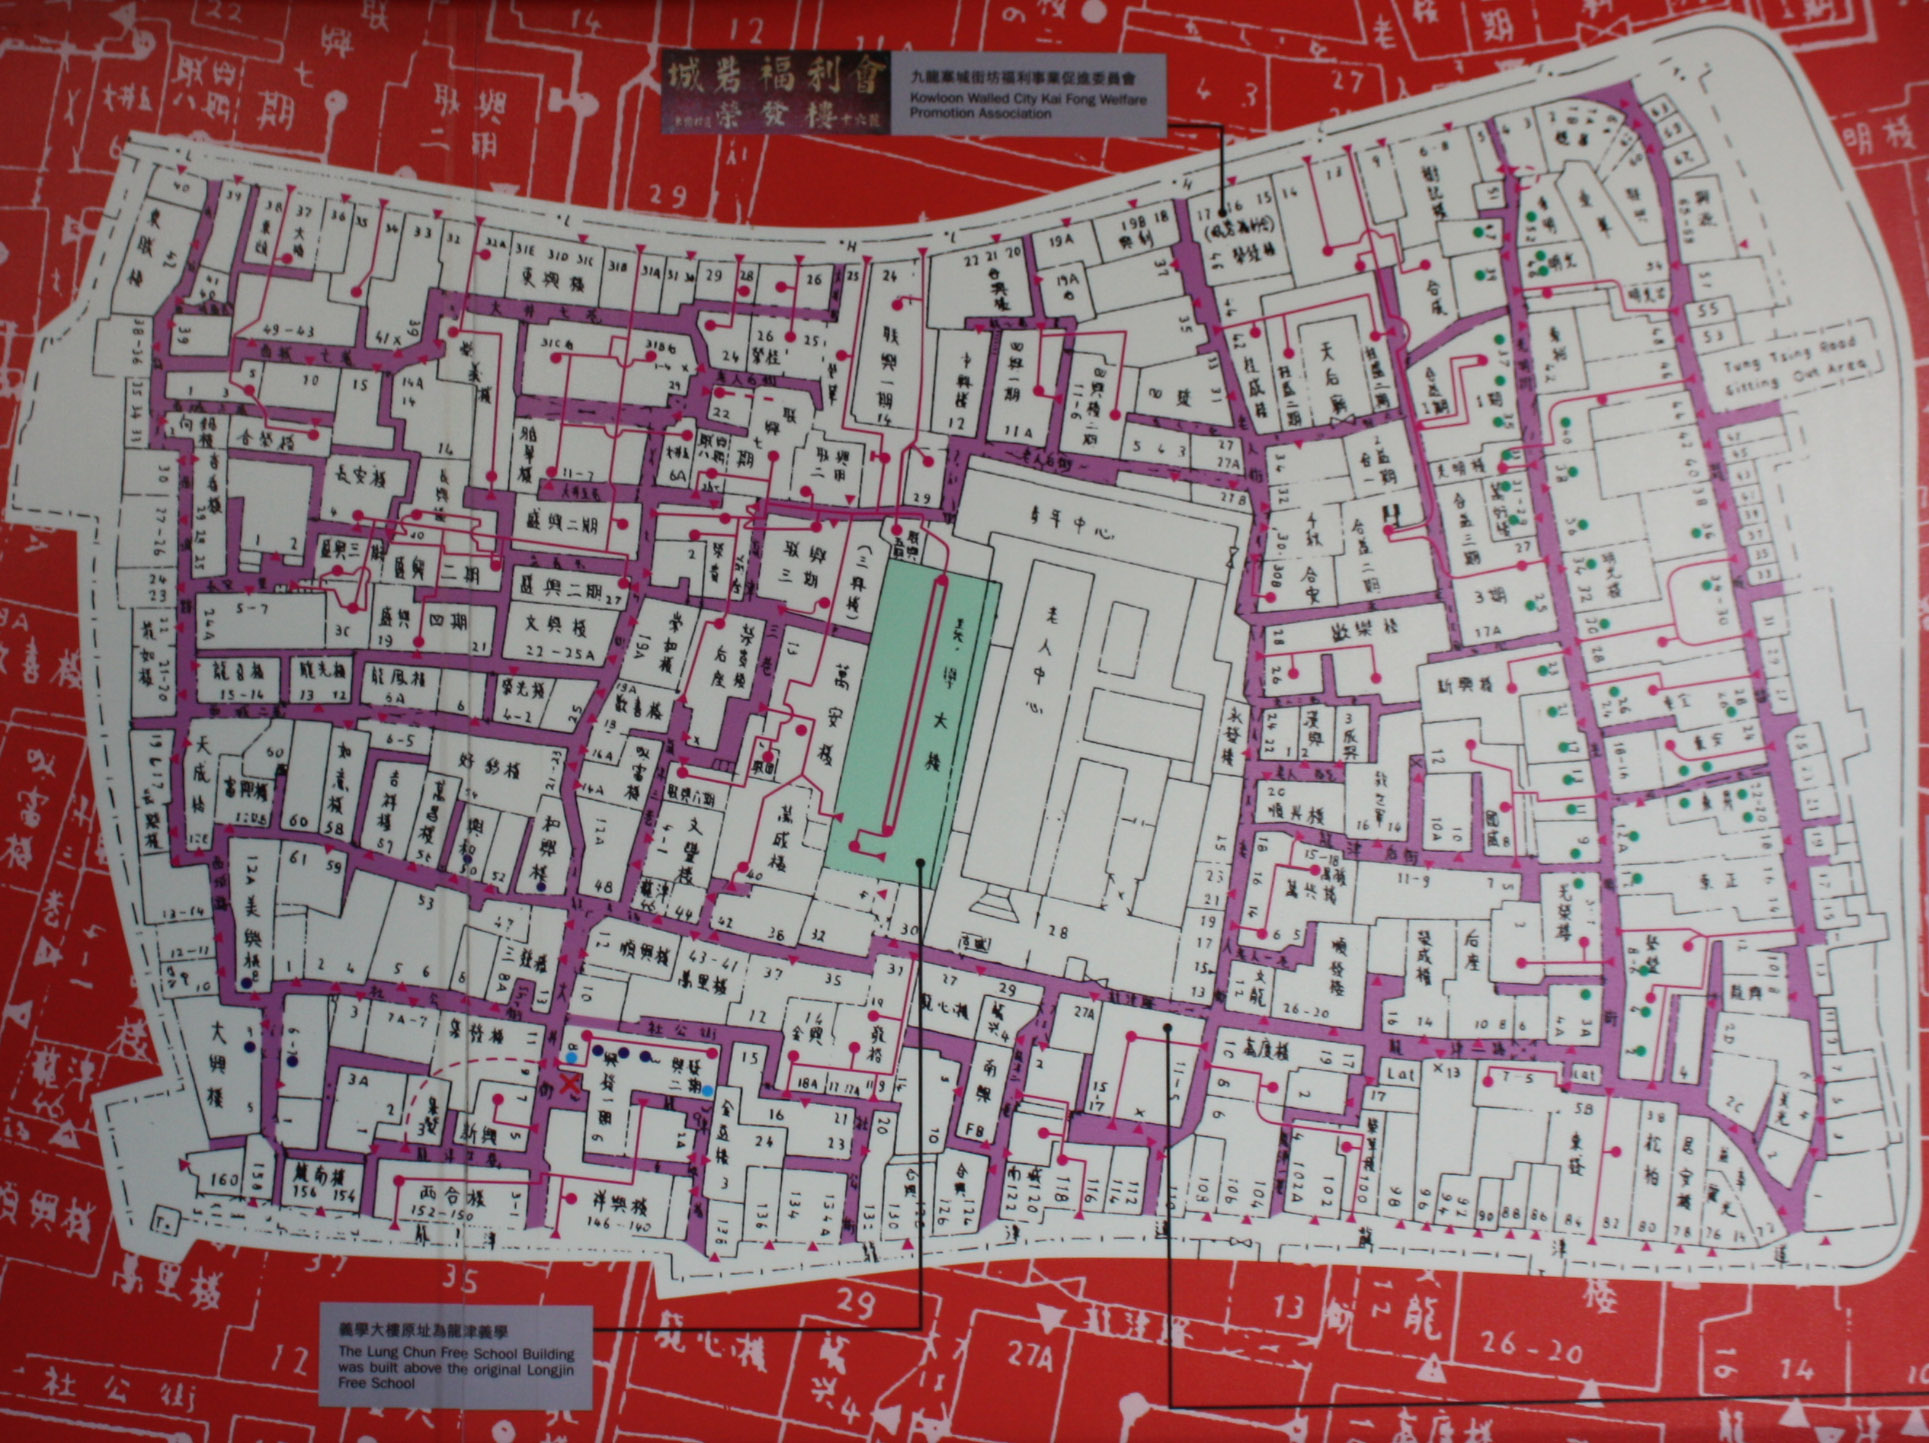 2 Kowloon Walled City Lessons